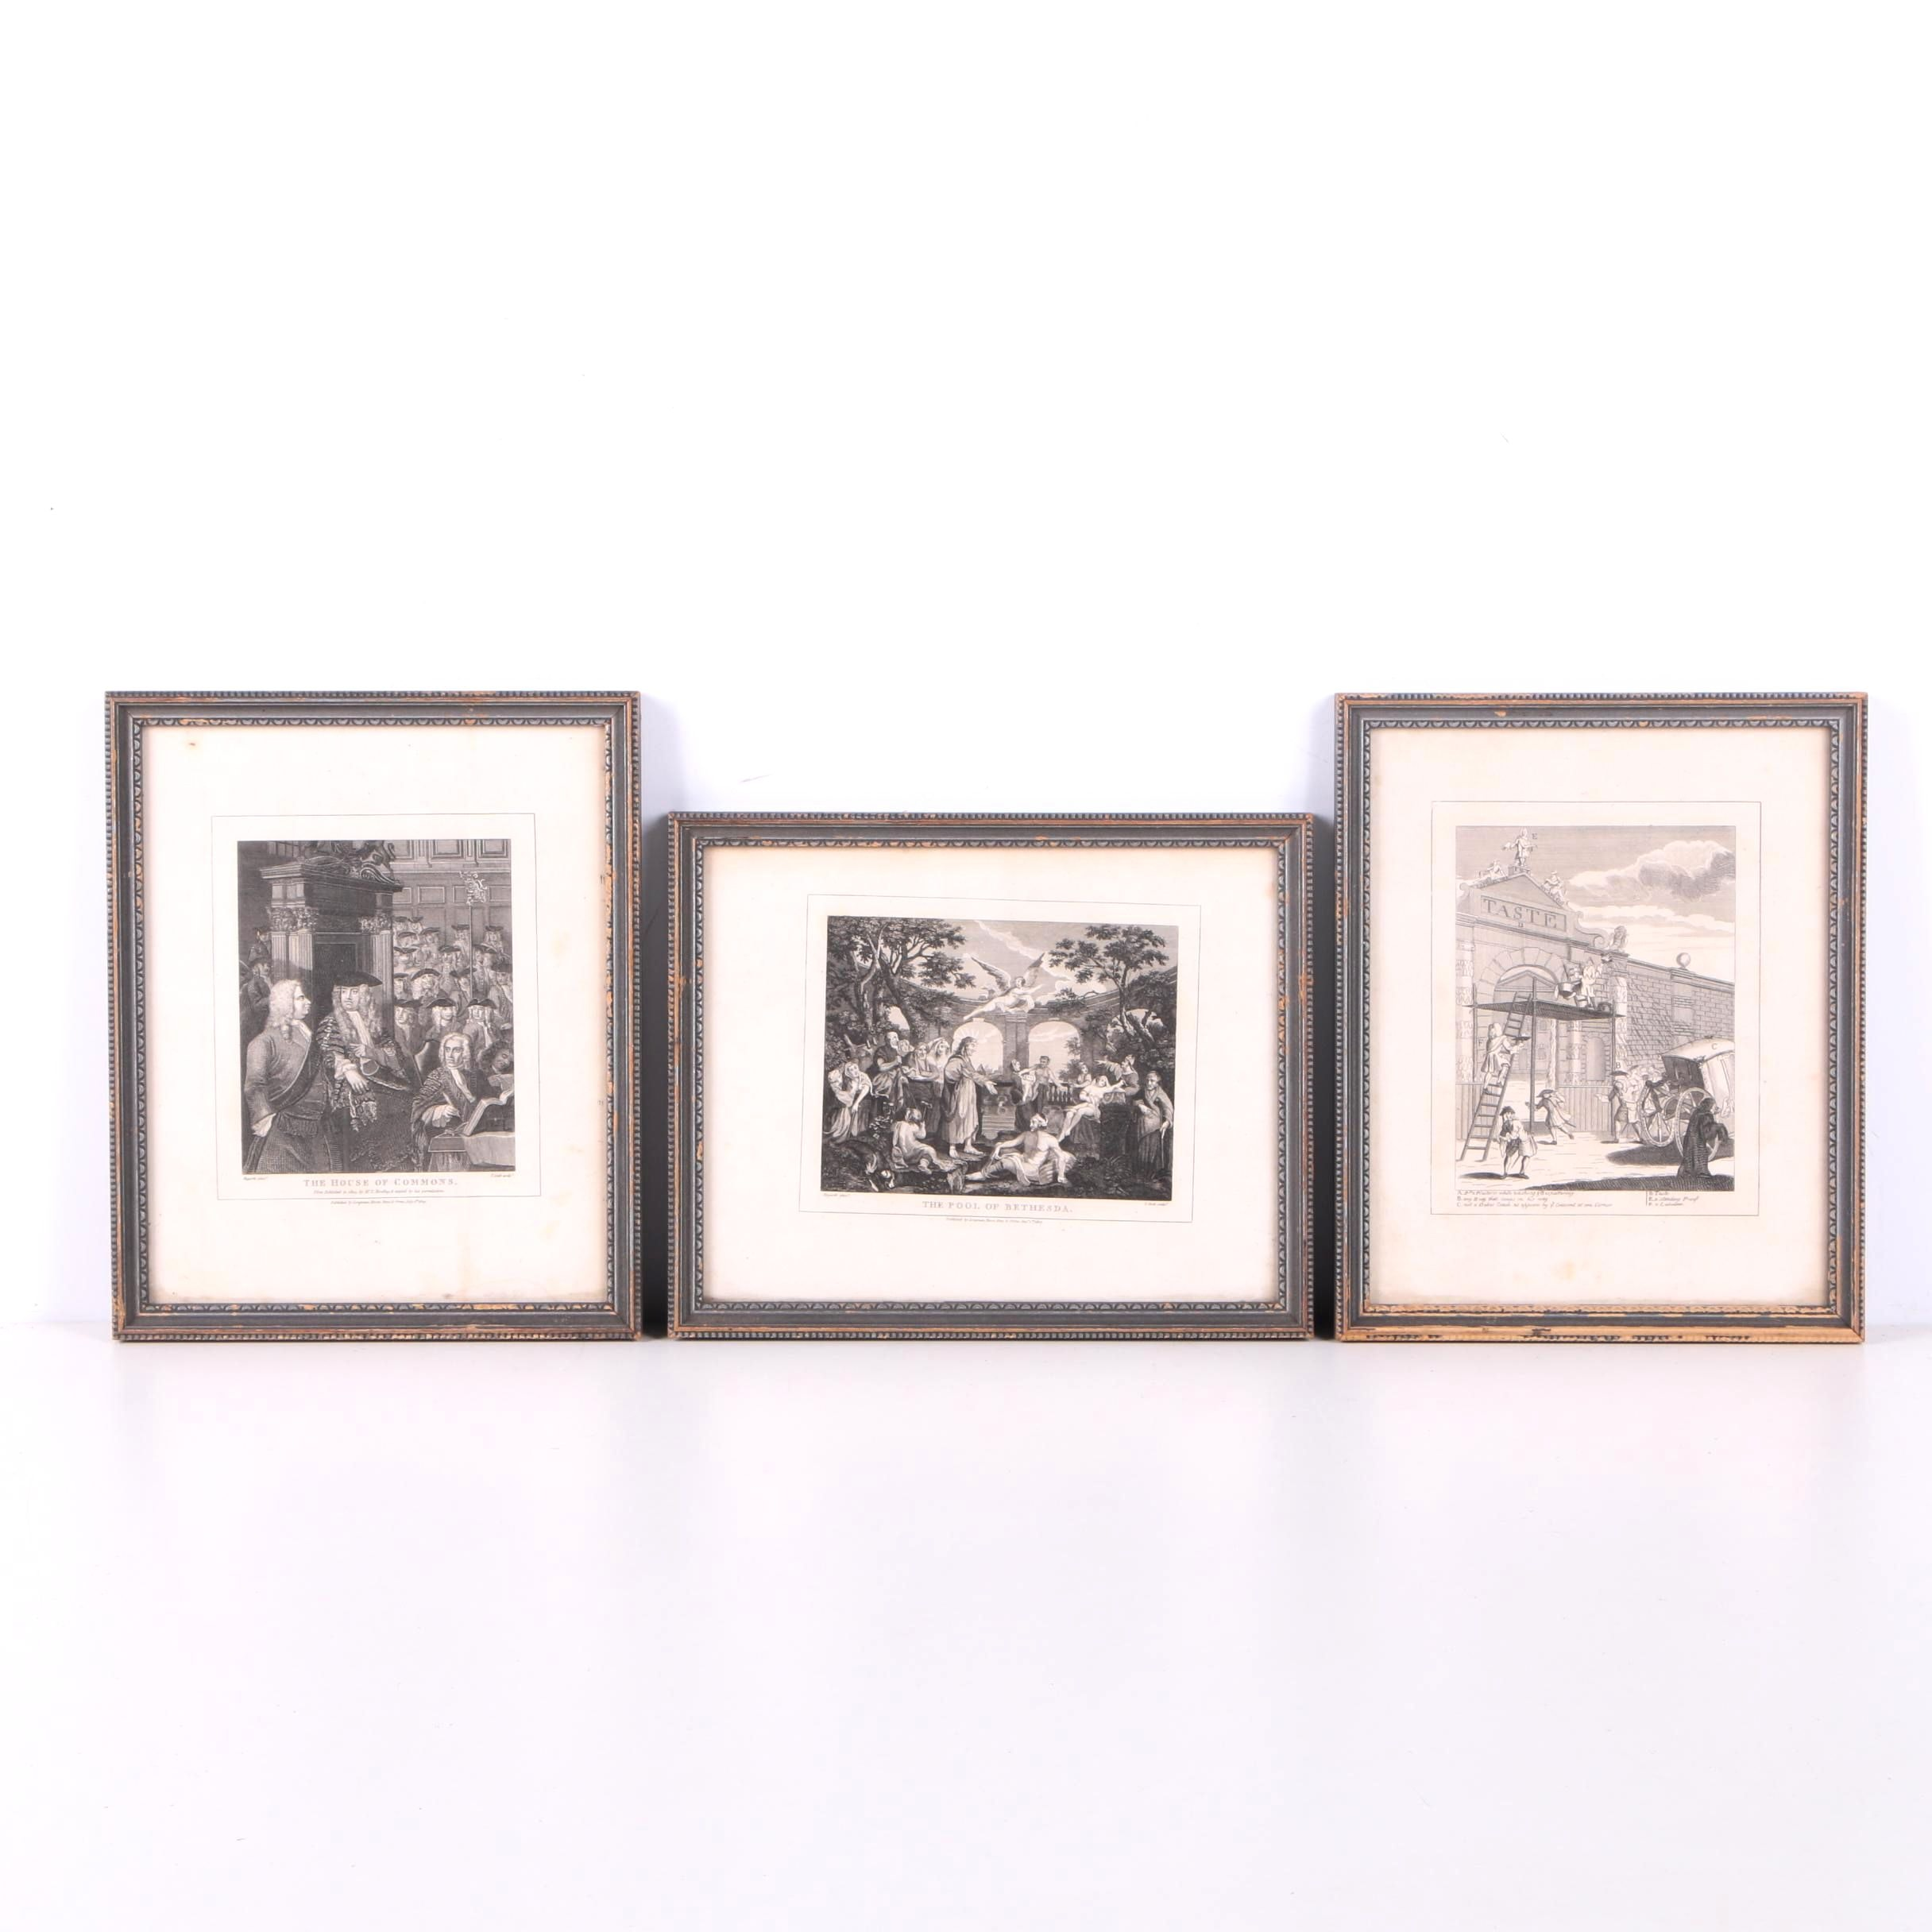 Thomas Cook Engravings on Paper After William Hogarth